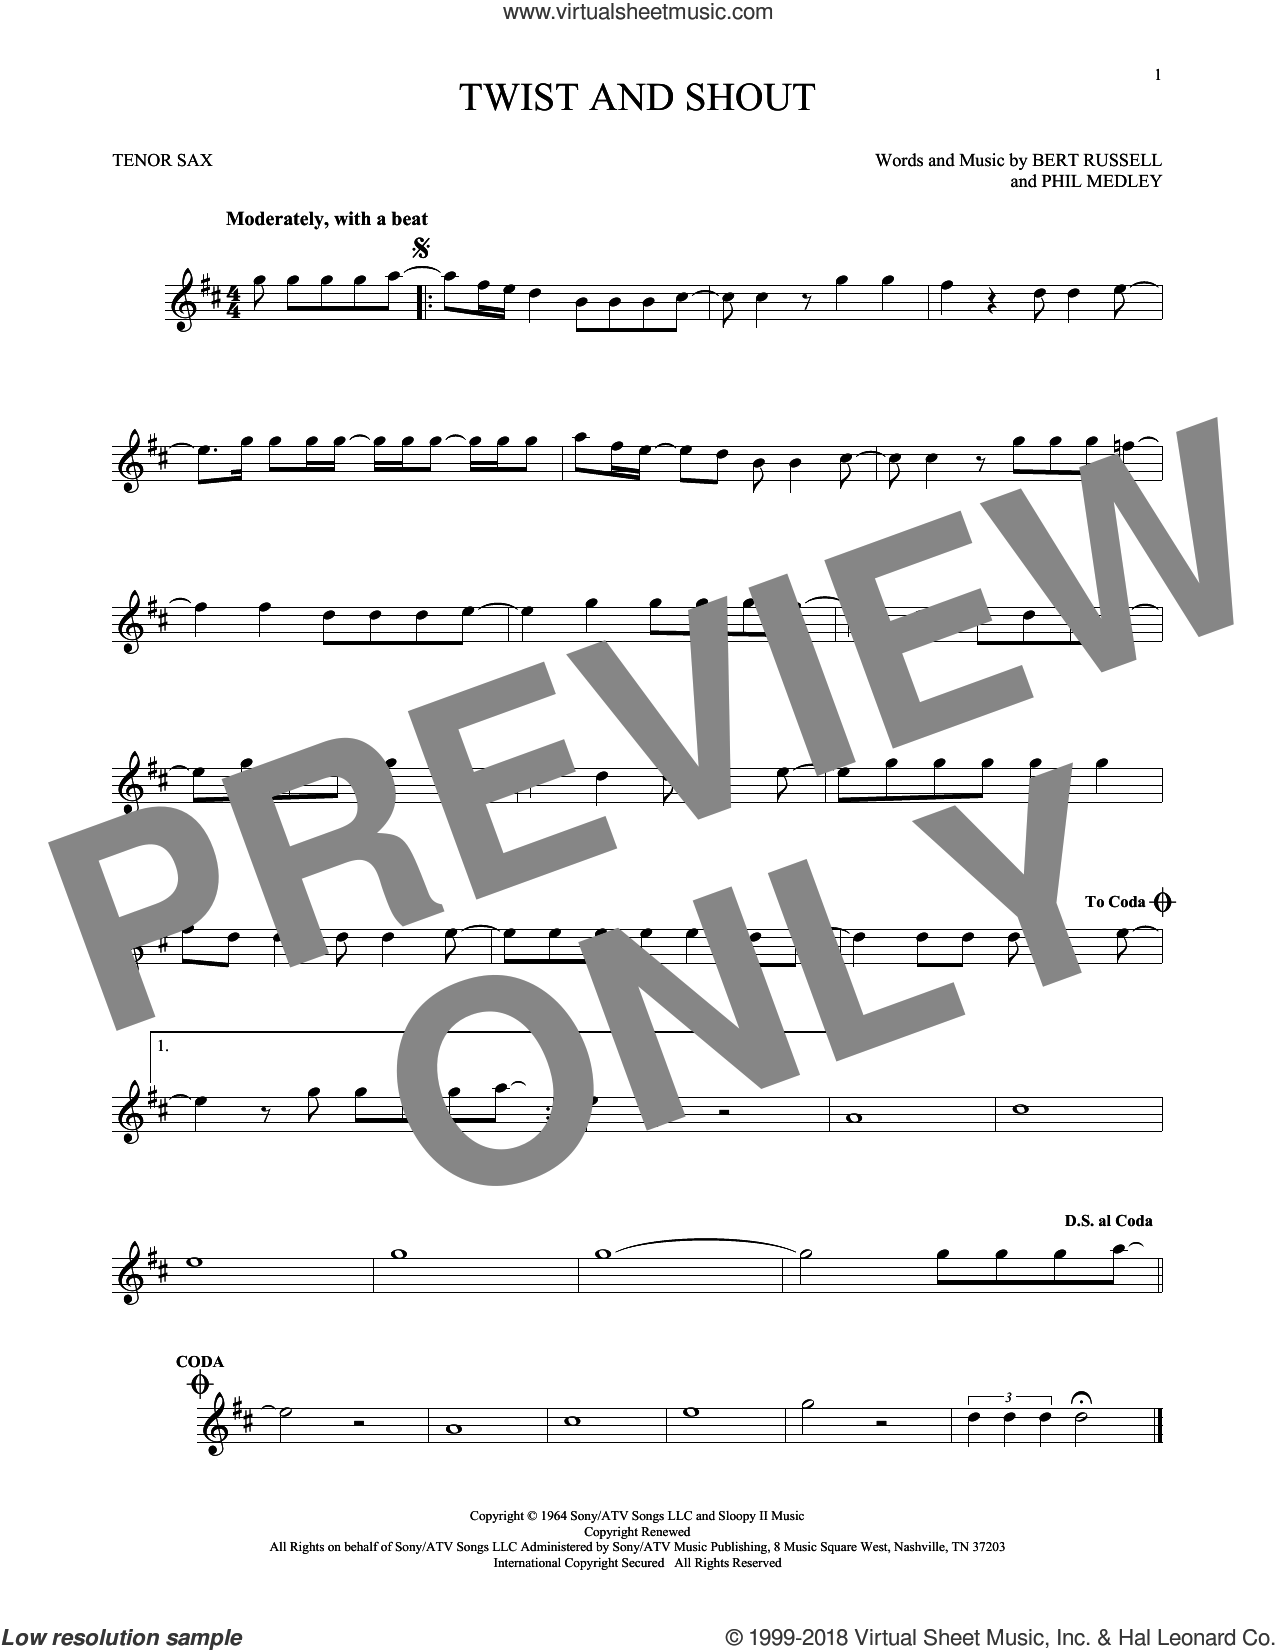 Twist And Shout sheet music for tenor saxophone solo by The Beatles, The Isley Brothers, Bert Russell and Phil Medley, intermediate skill level